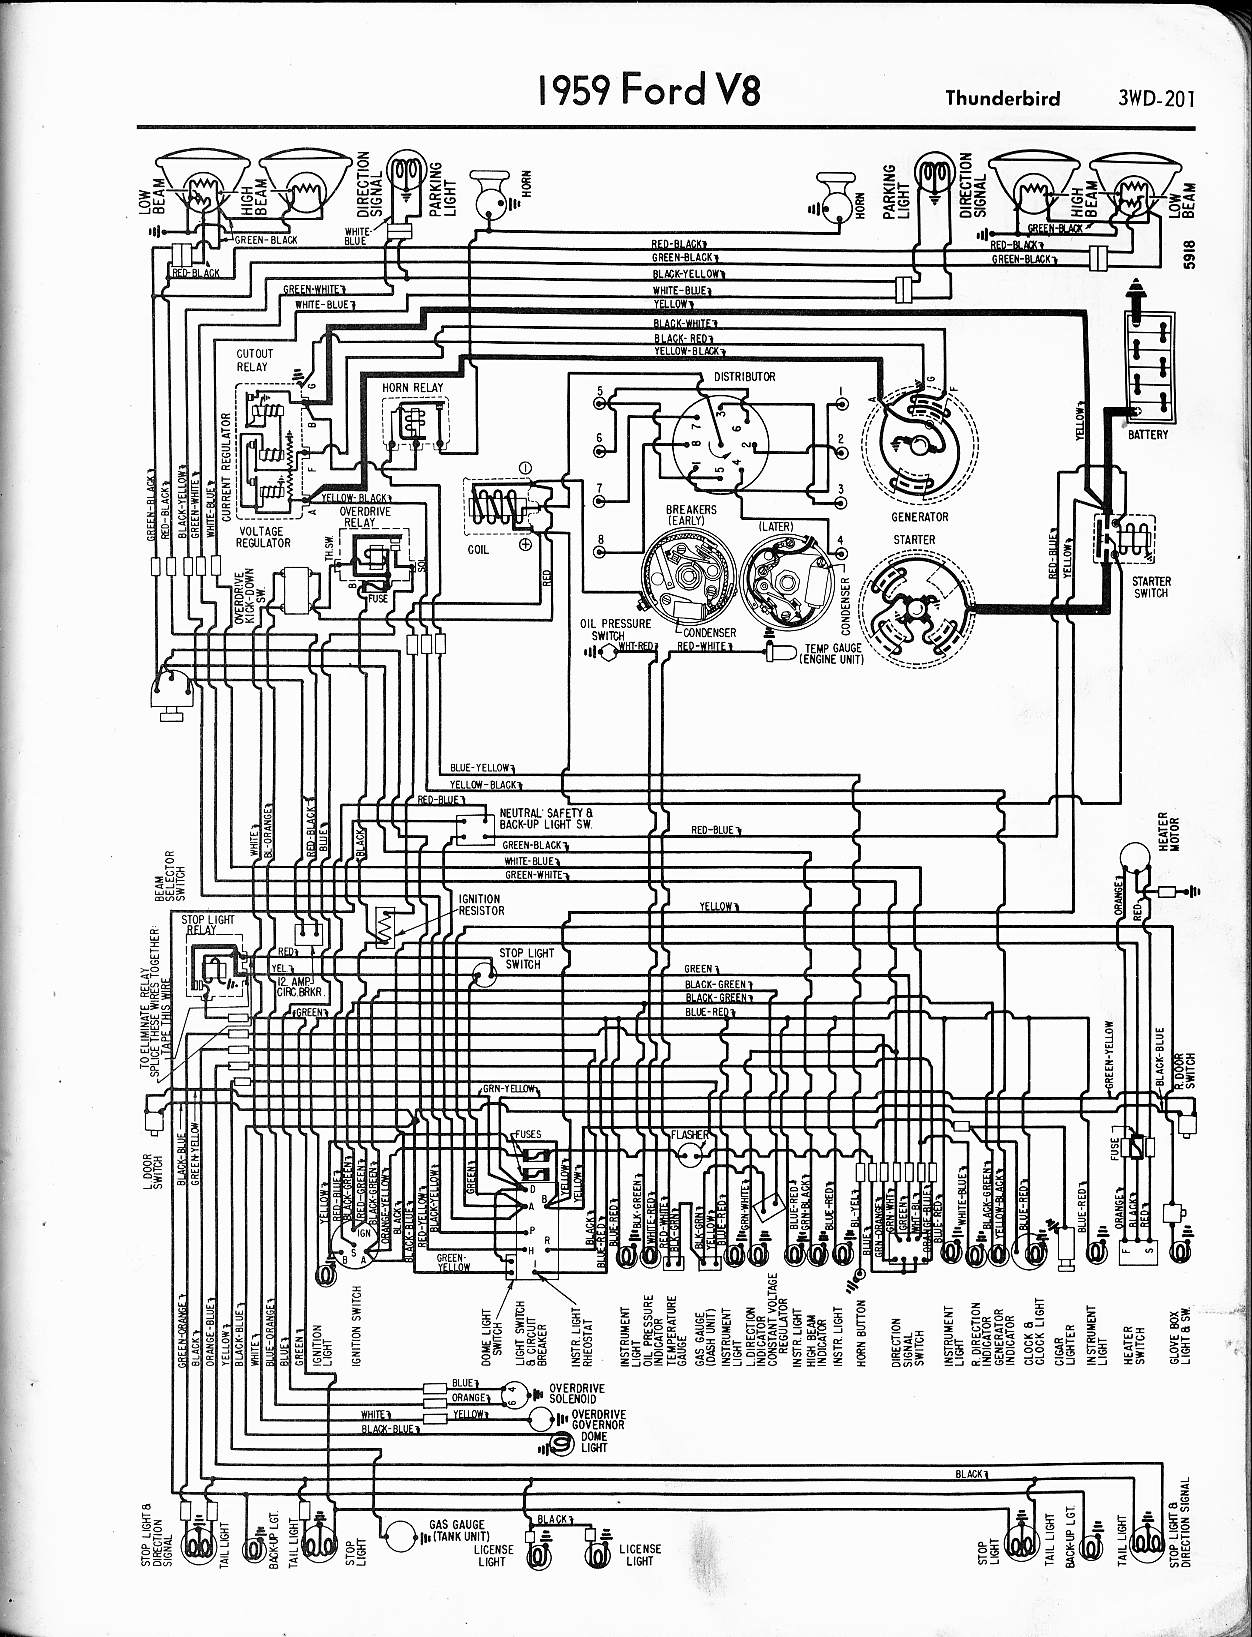 MWire5765 201 57 65 ford wiring diagrams ford truck wiring diagrams free at webbmarketing.co